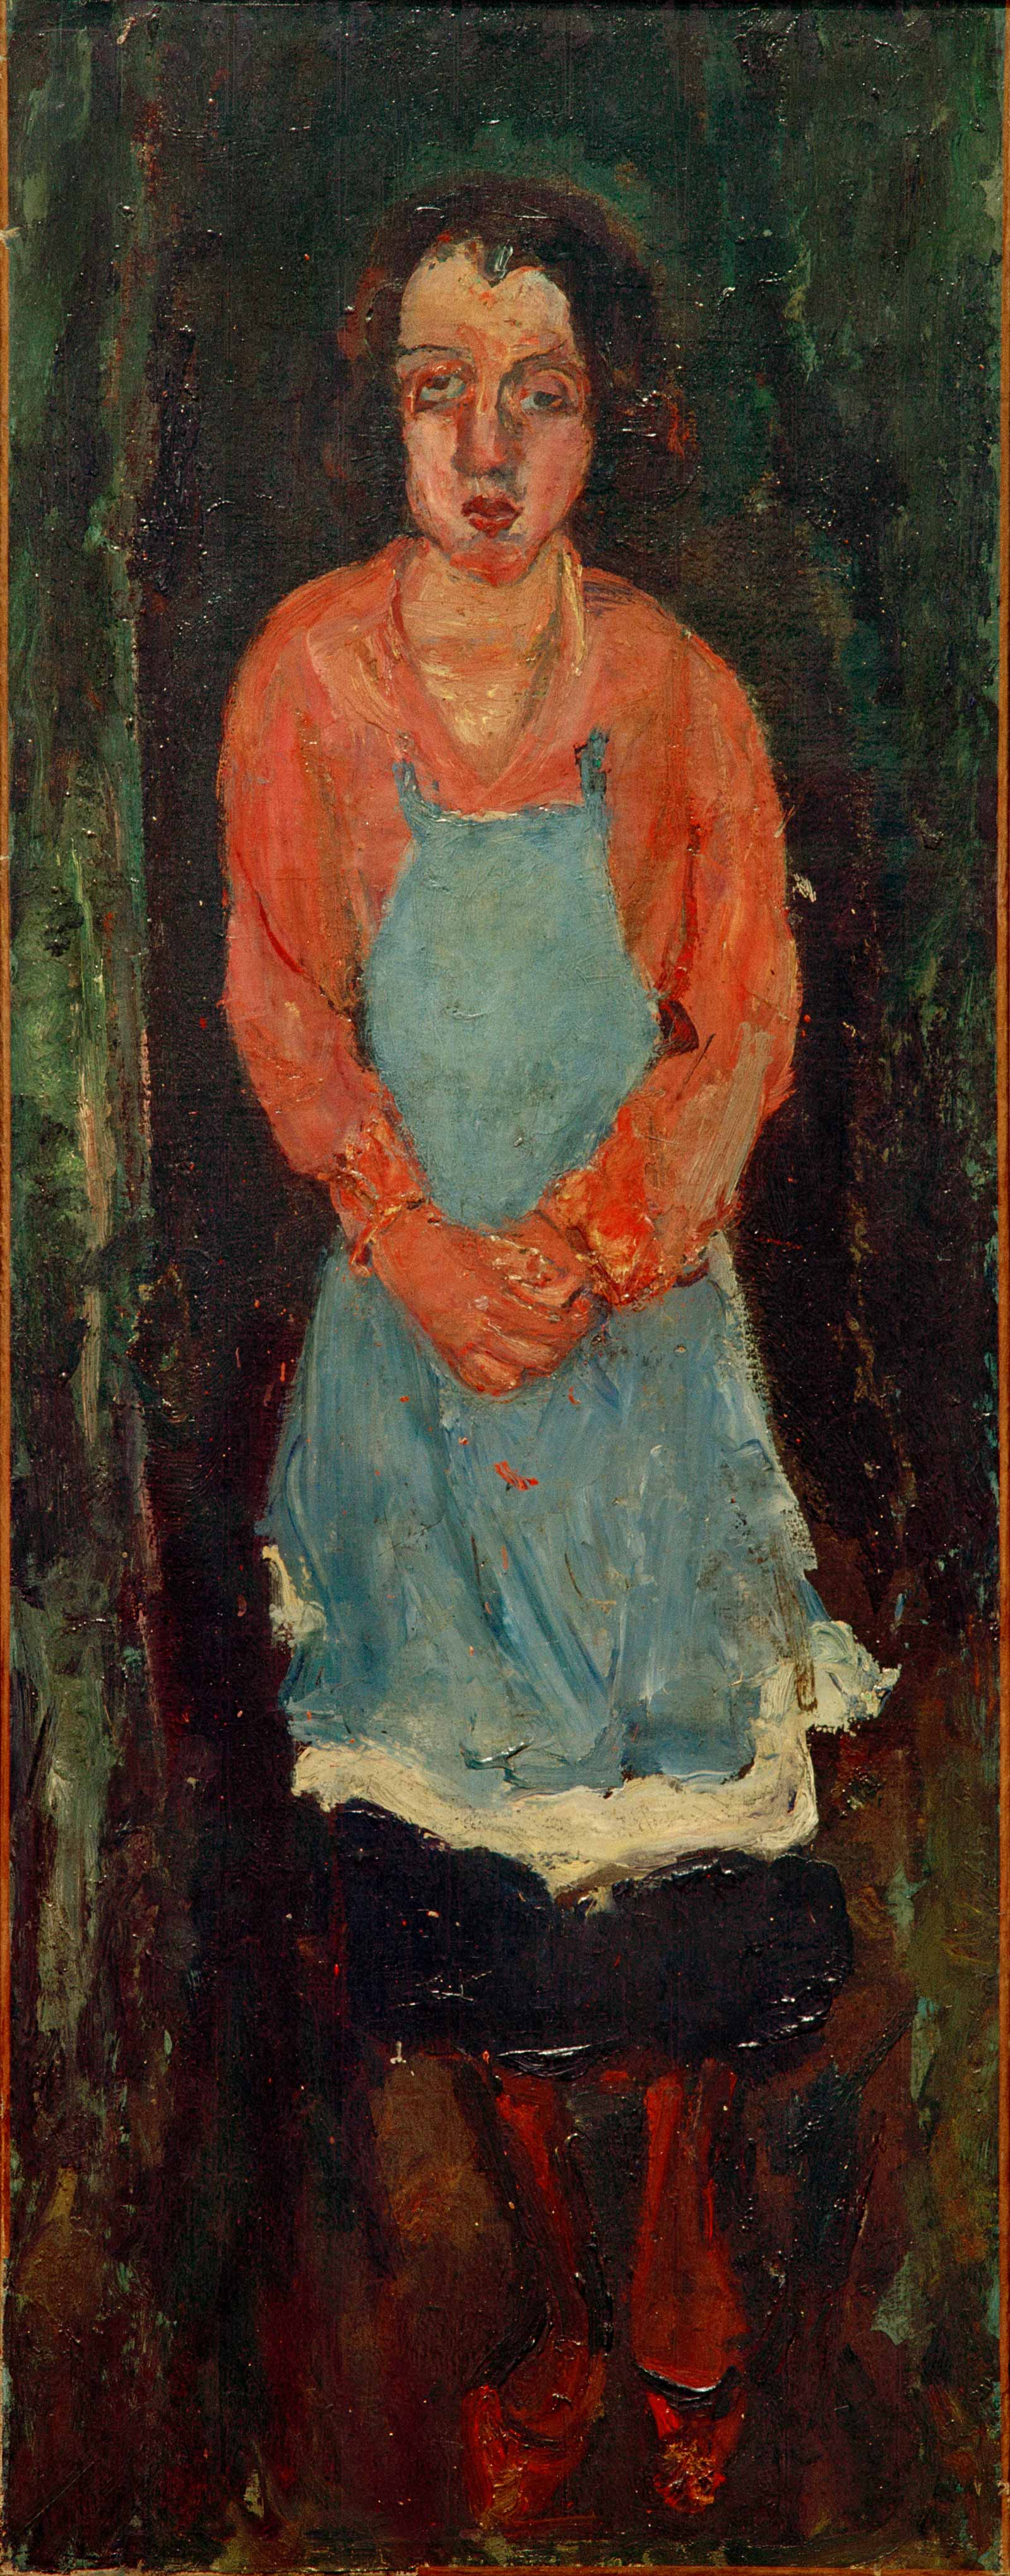 Soutine: The power and the fury of an eccentric genius